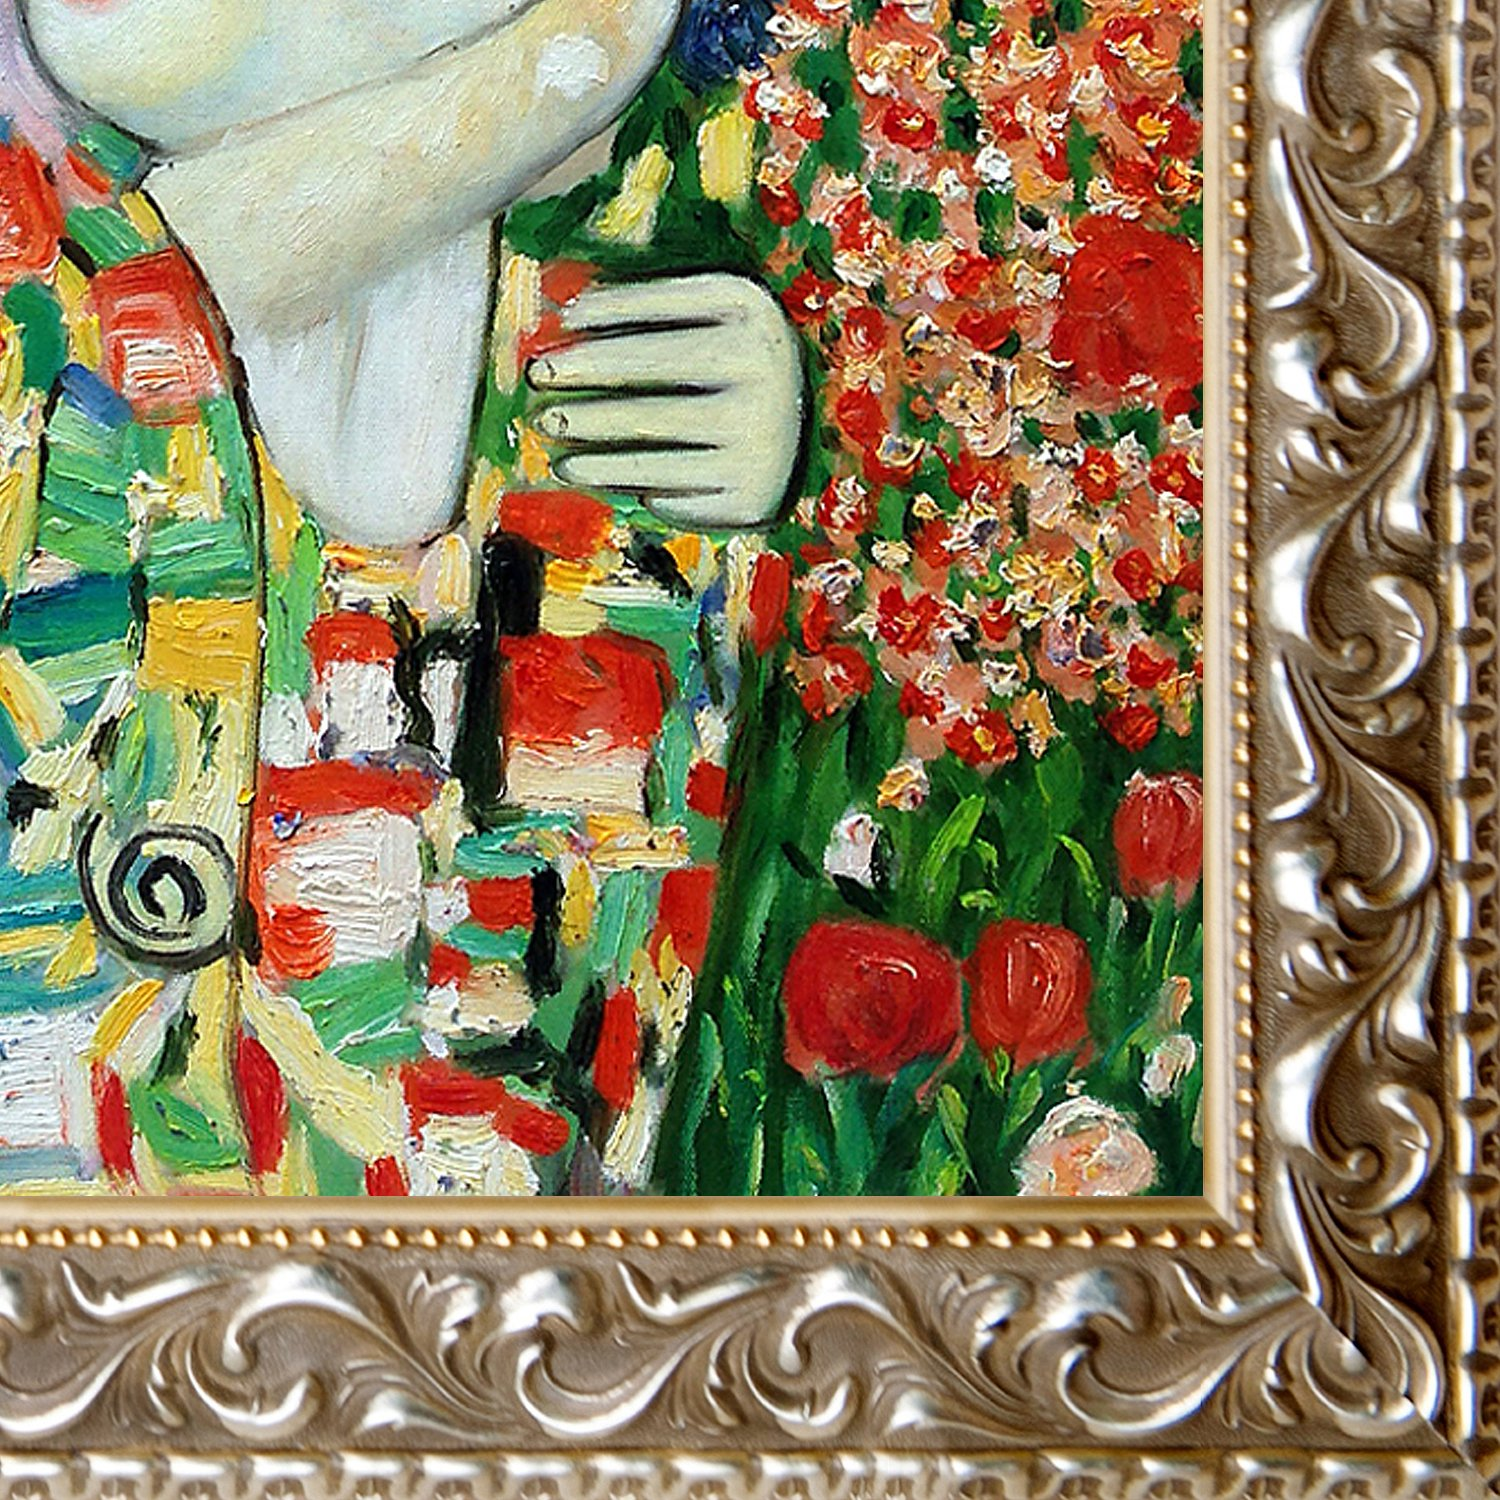 overstockArt The Dancer Artwork by Klimt in Rococo Silver-Antiqued Silver Frame with Gold Bead Inset